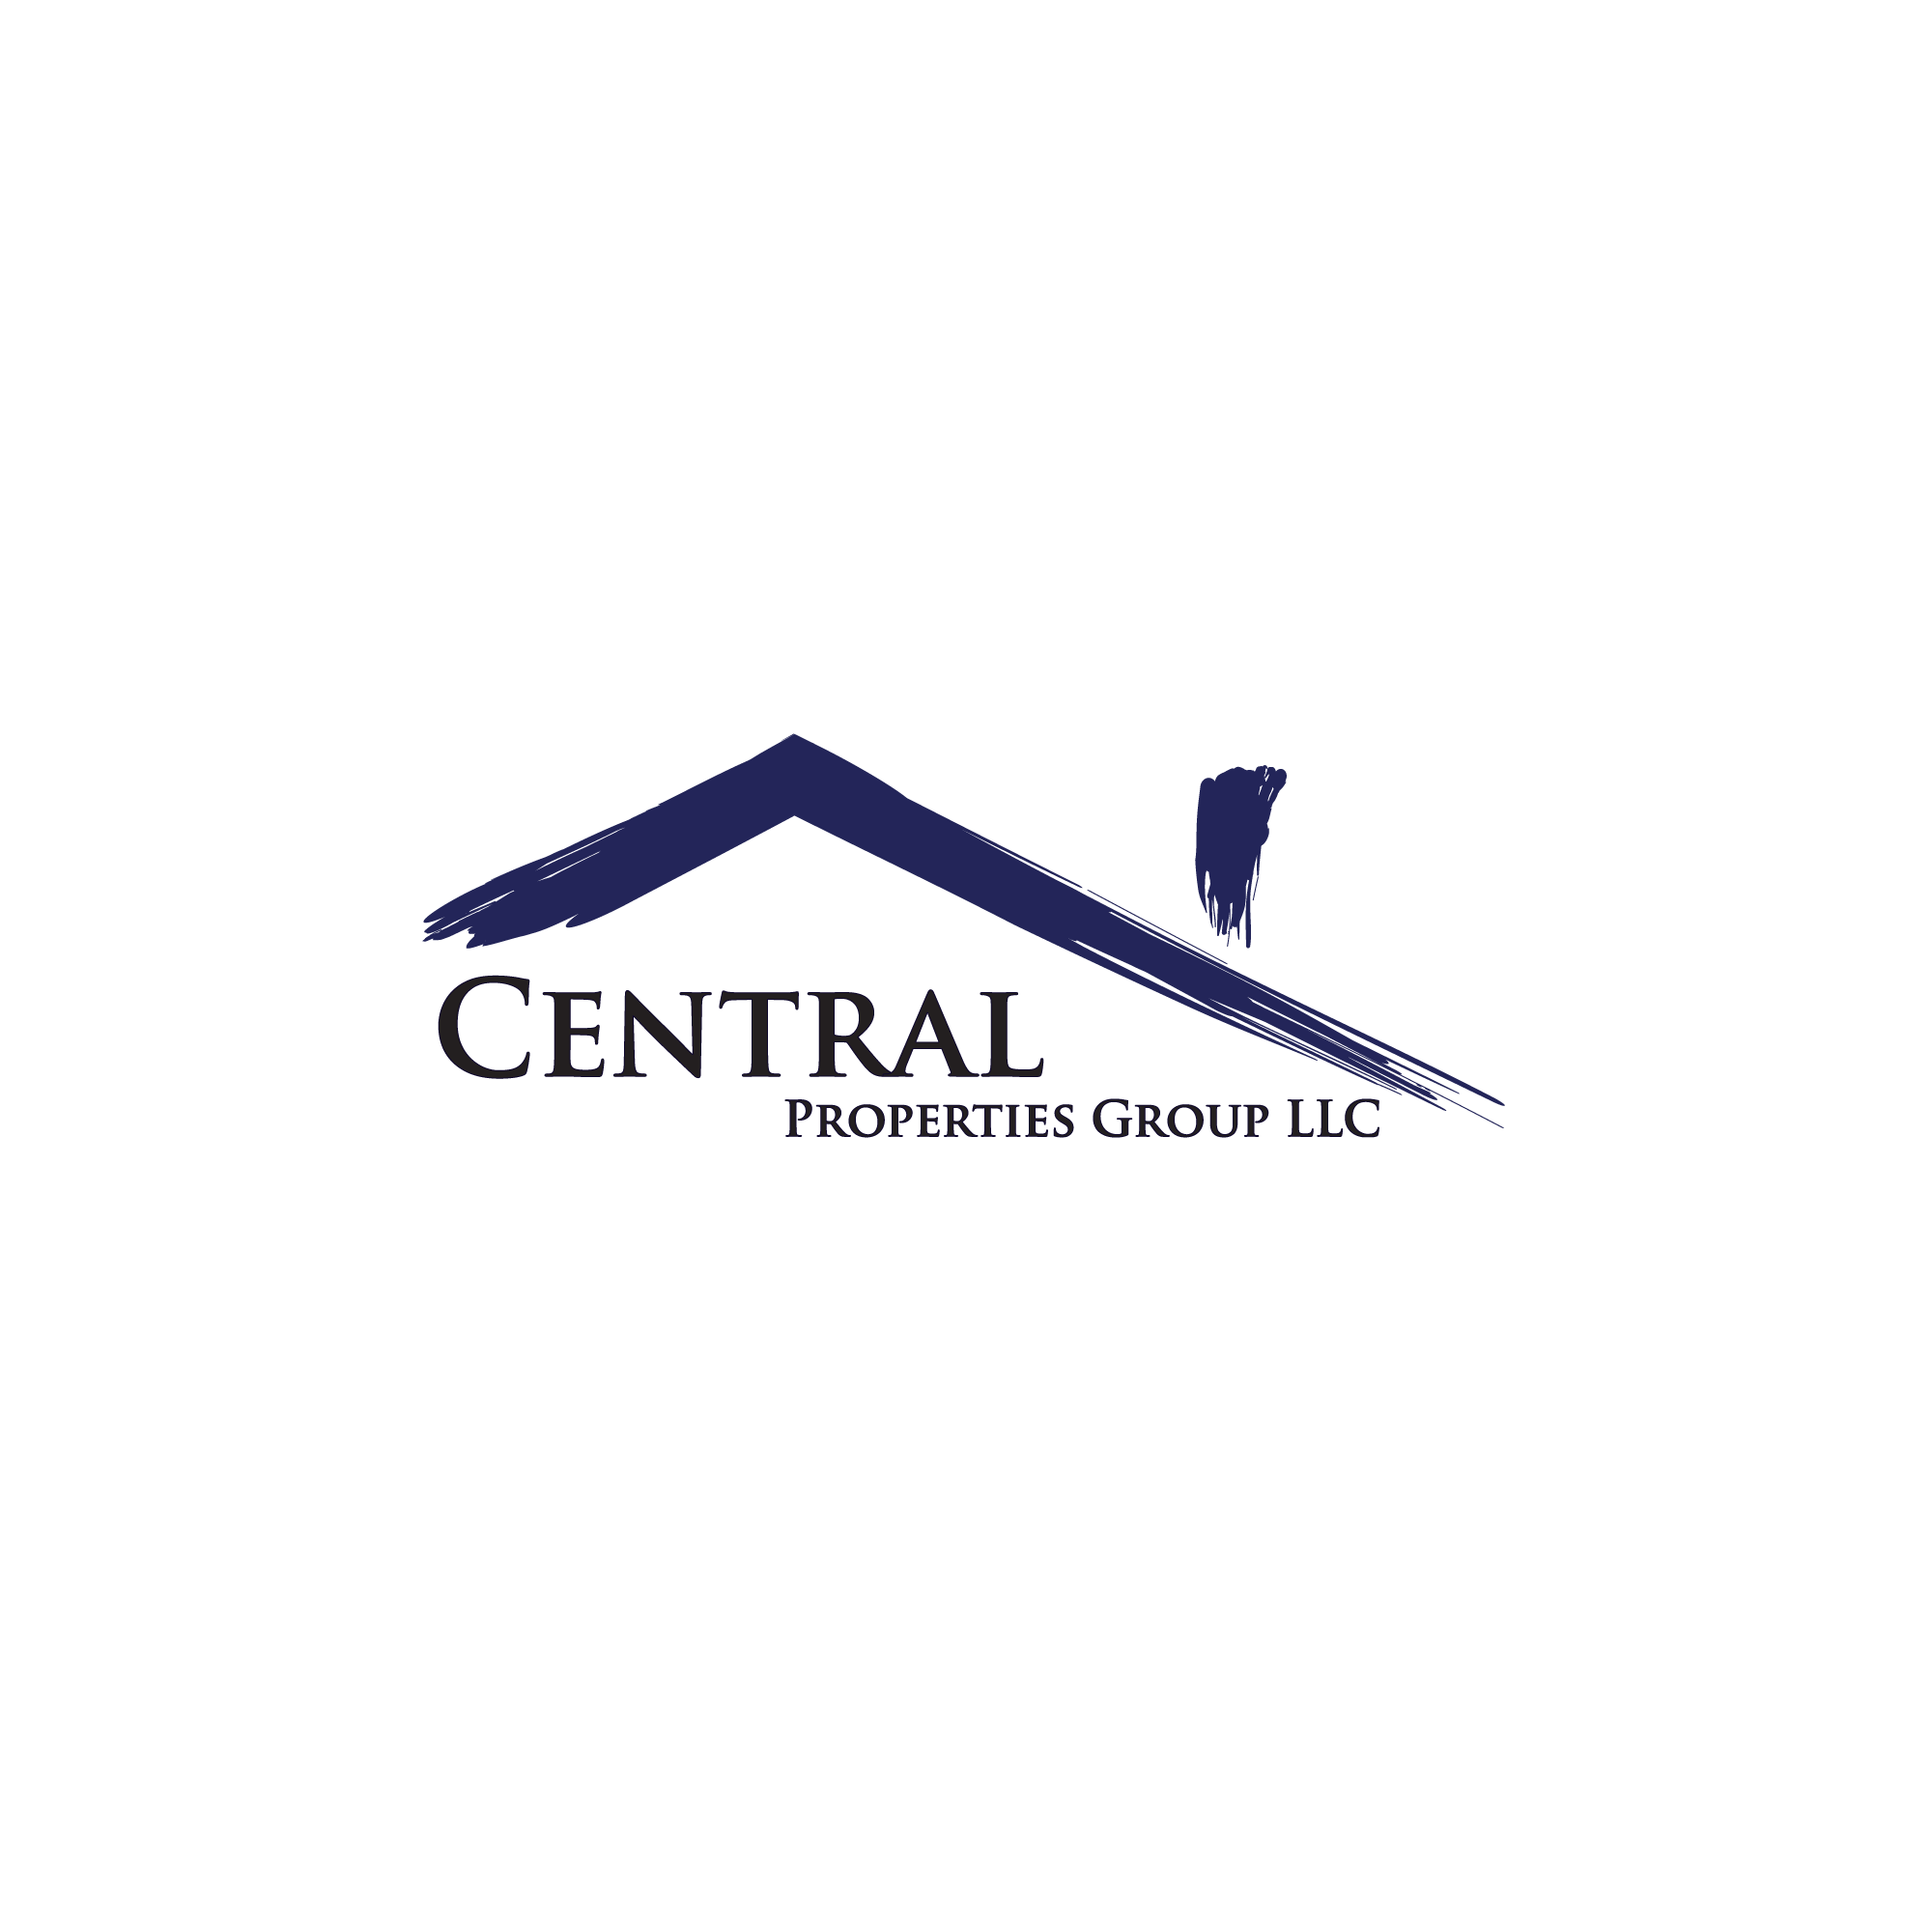 Central Properties Group LLC